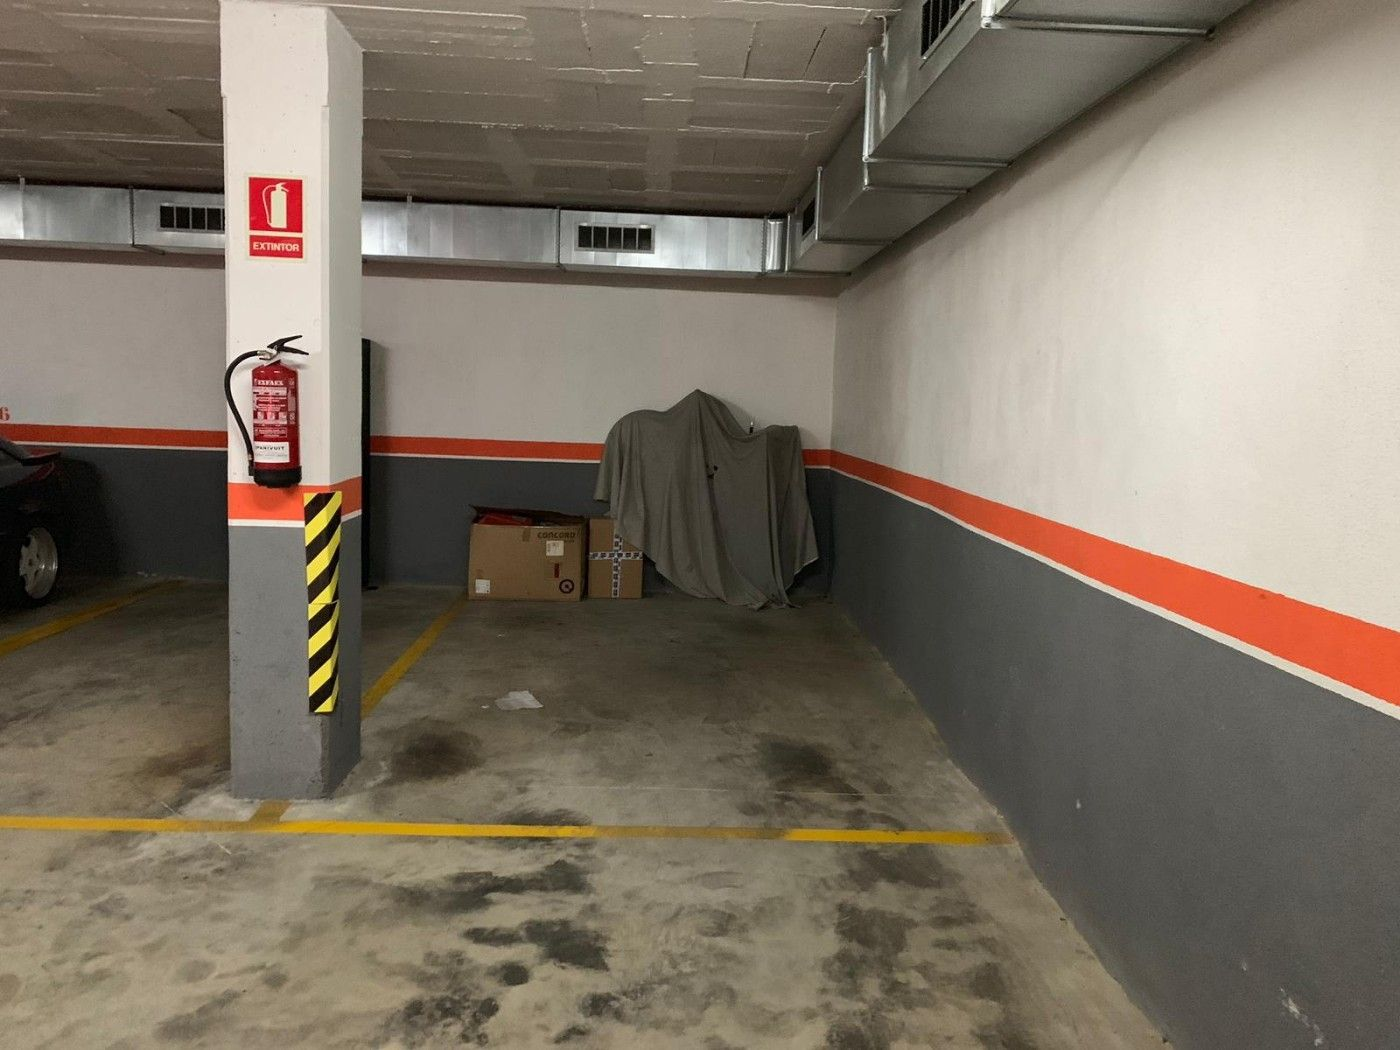 Rent Car parking in Carrer benviure, 42. Buena maniobra